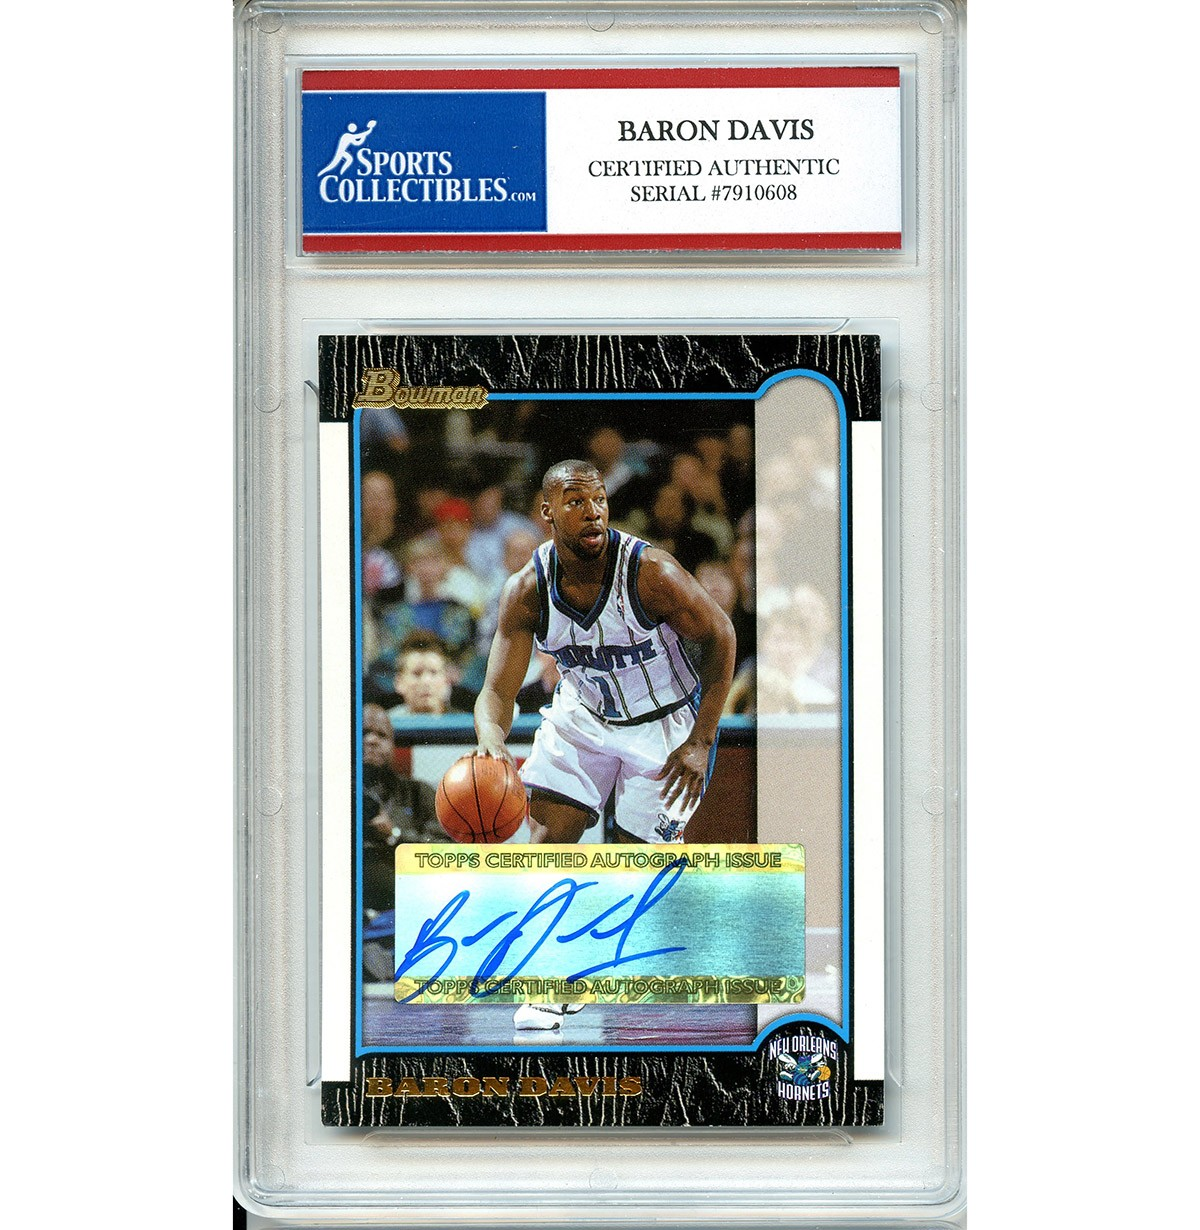 ba432f7fa Baron Davis Autographed Signed 2004 Bowman Trading Card - Certified  Authentic